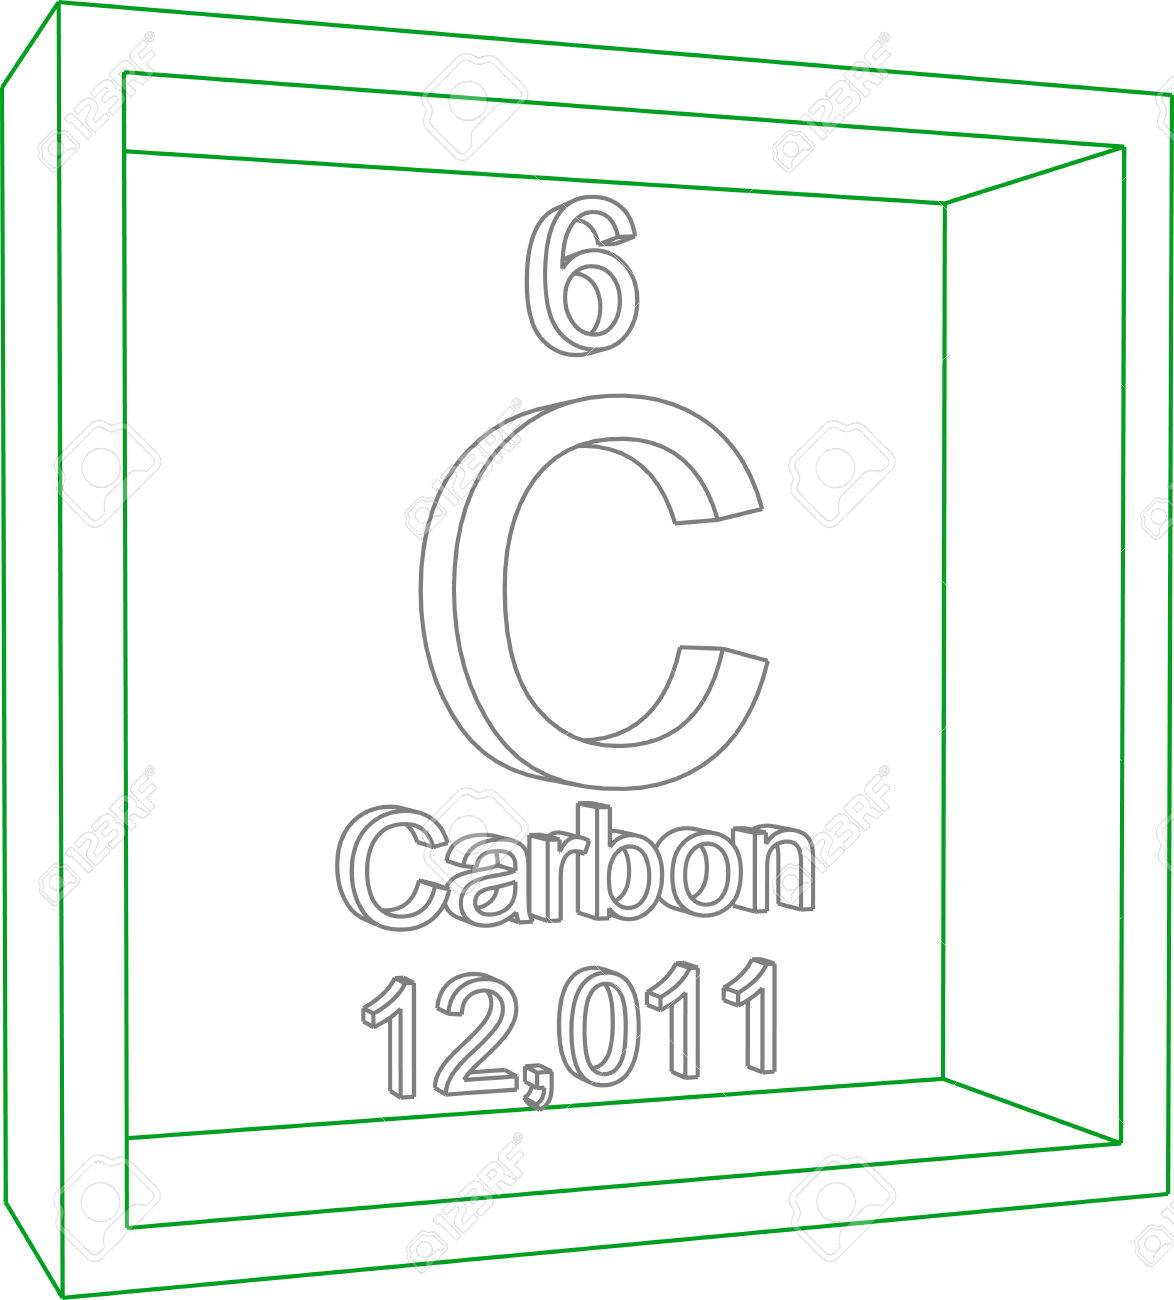 14th element periodic table choice image periodic table images carbon element periodic table images periodic table images carbon element periodic table choice image periodic table gamestrikefo Image collections